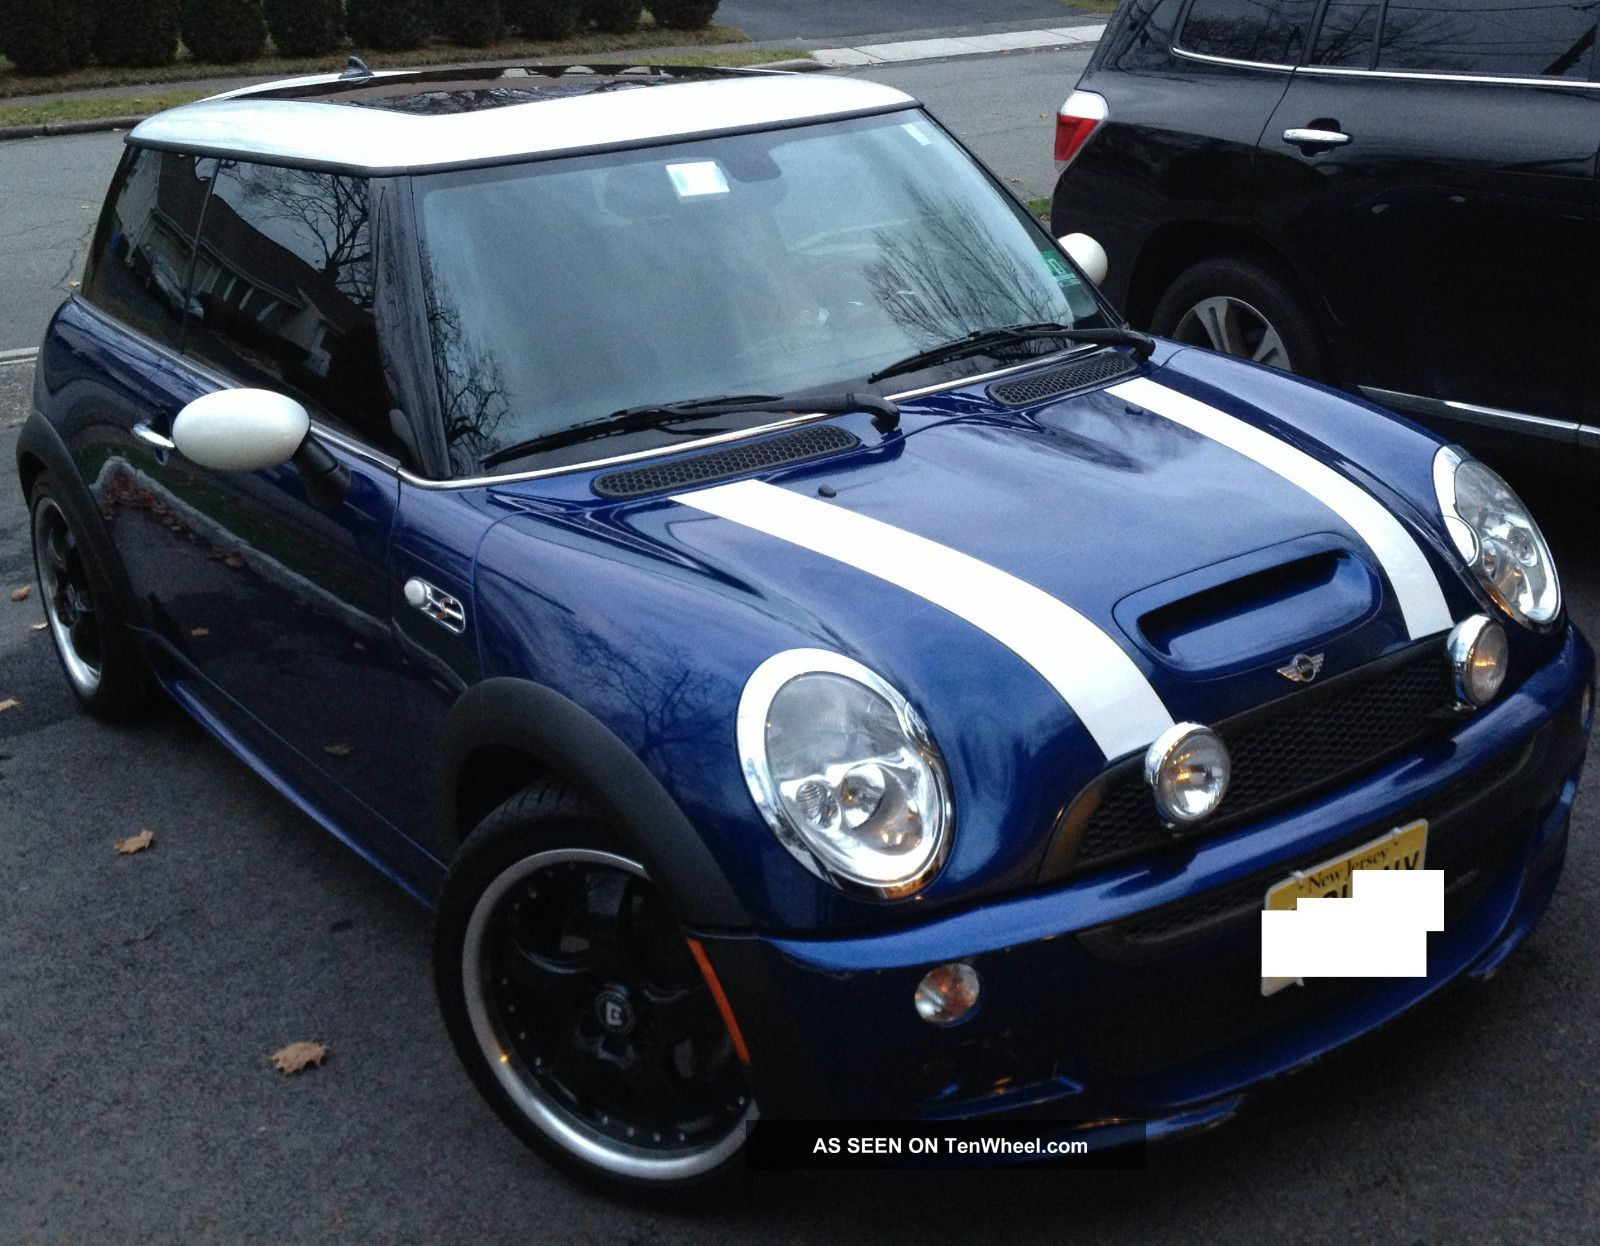 2004 mini cooper s hatchback 2 door 1 6l with john cooper works package. Black Bedroom Furniture Sets. Home Design Ideas